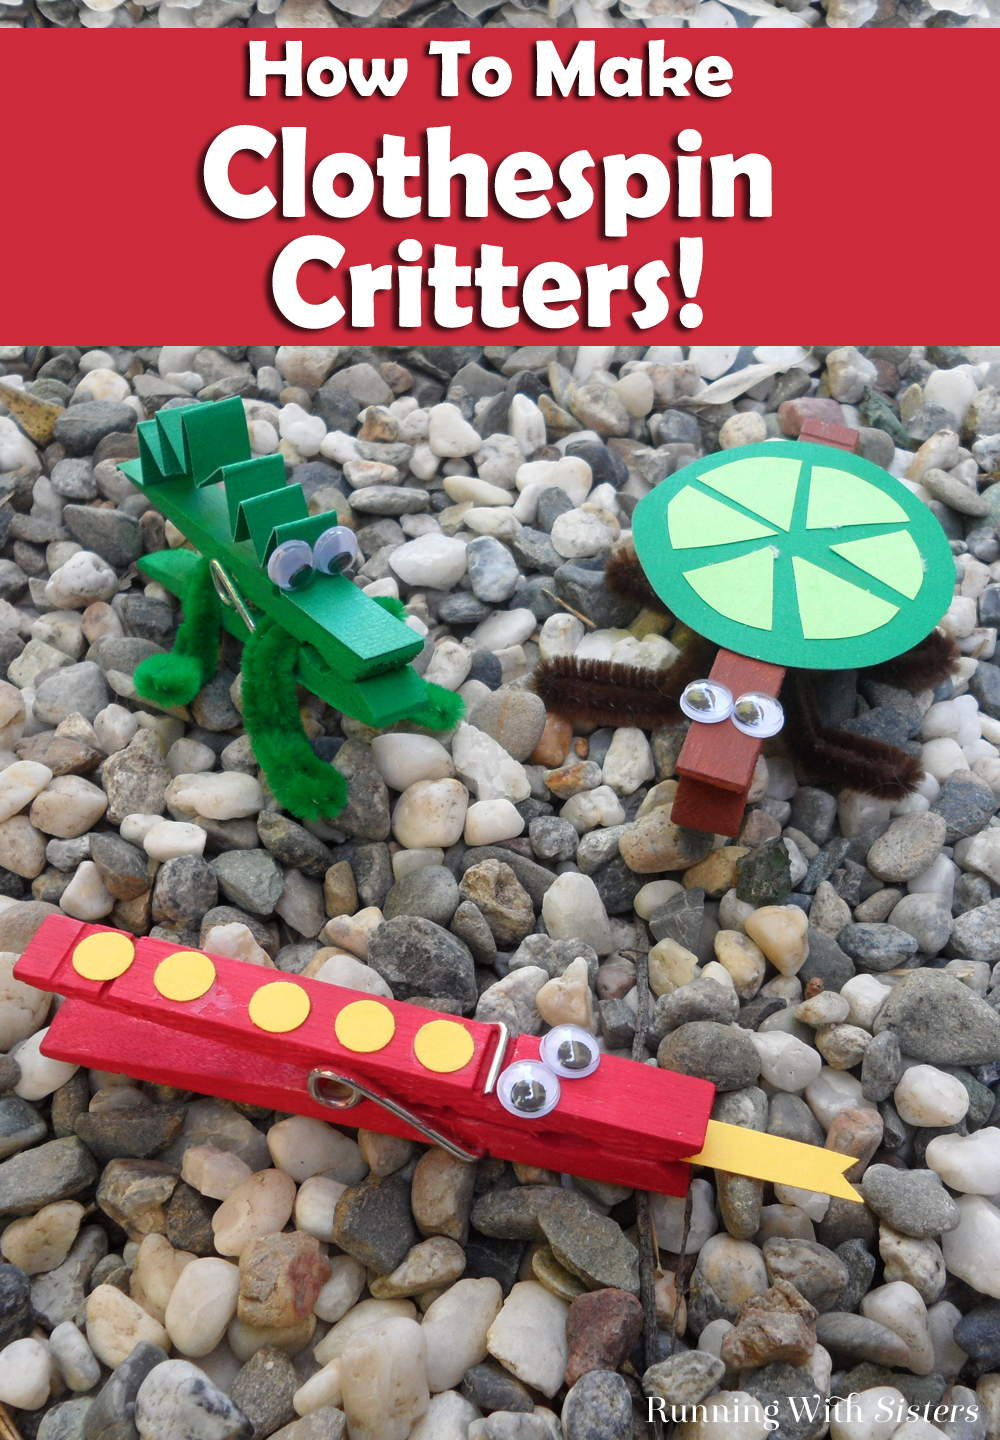 Kids! Make a super fun set of clothespin critters including a clothespin alligator, a clothespin turtle, and a polka dot clothespin snake!